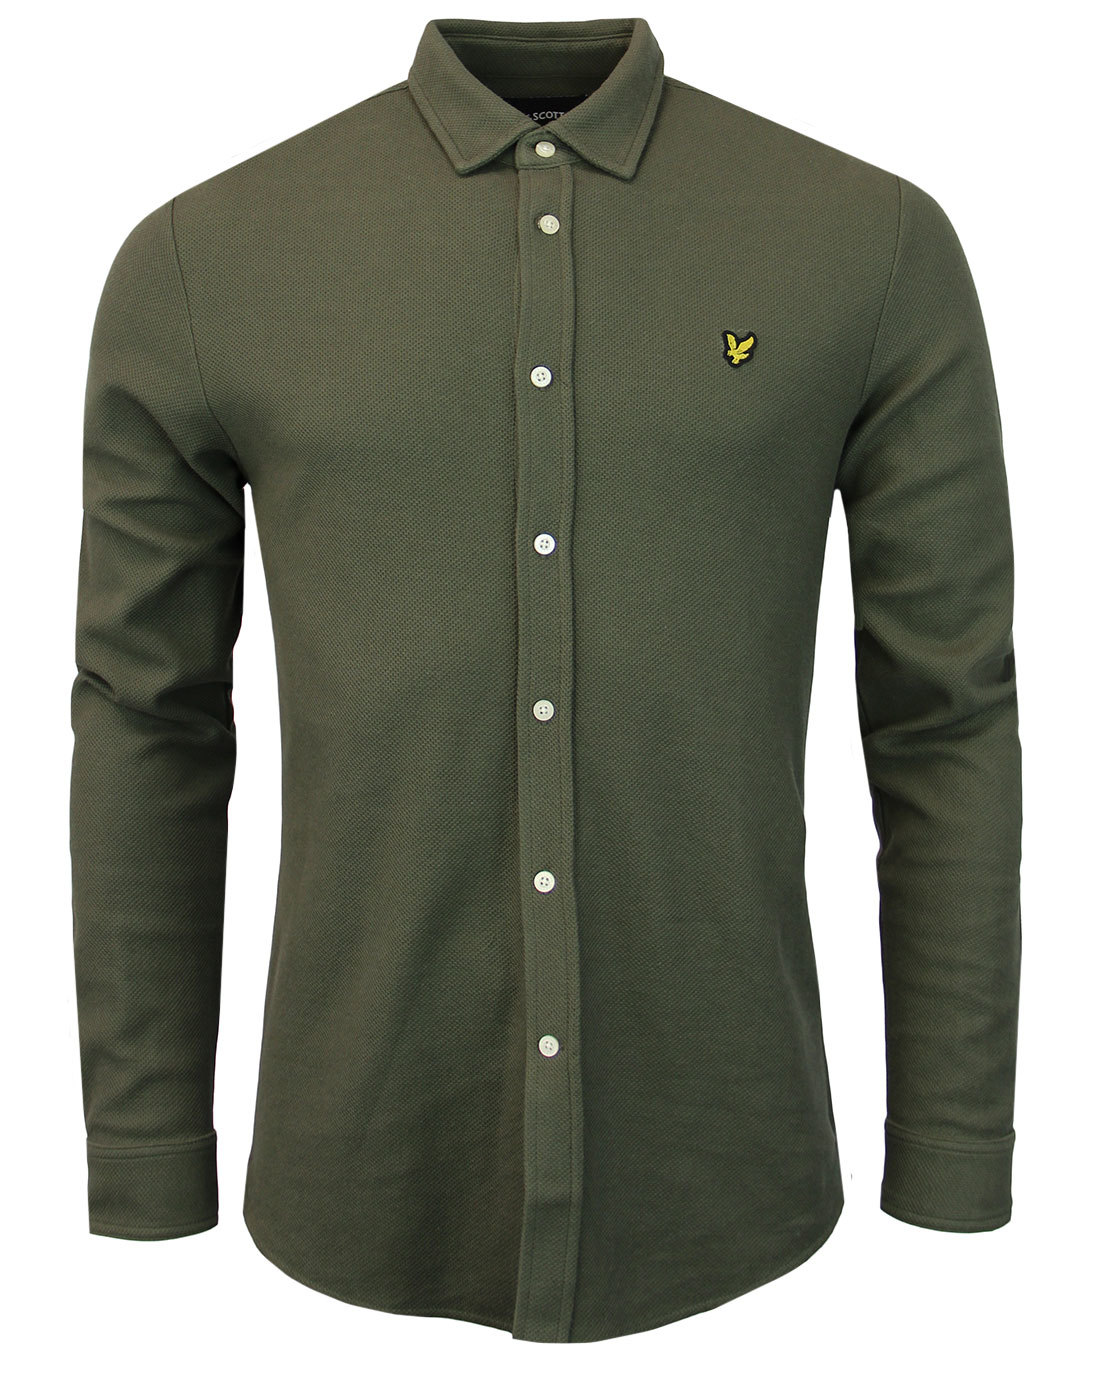 LYLE & SCOTT Retro Mod Honeycomb Jersey Shirt (O)